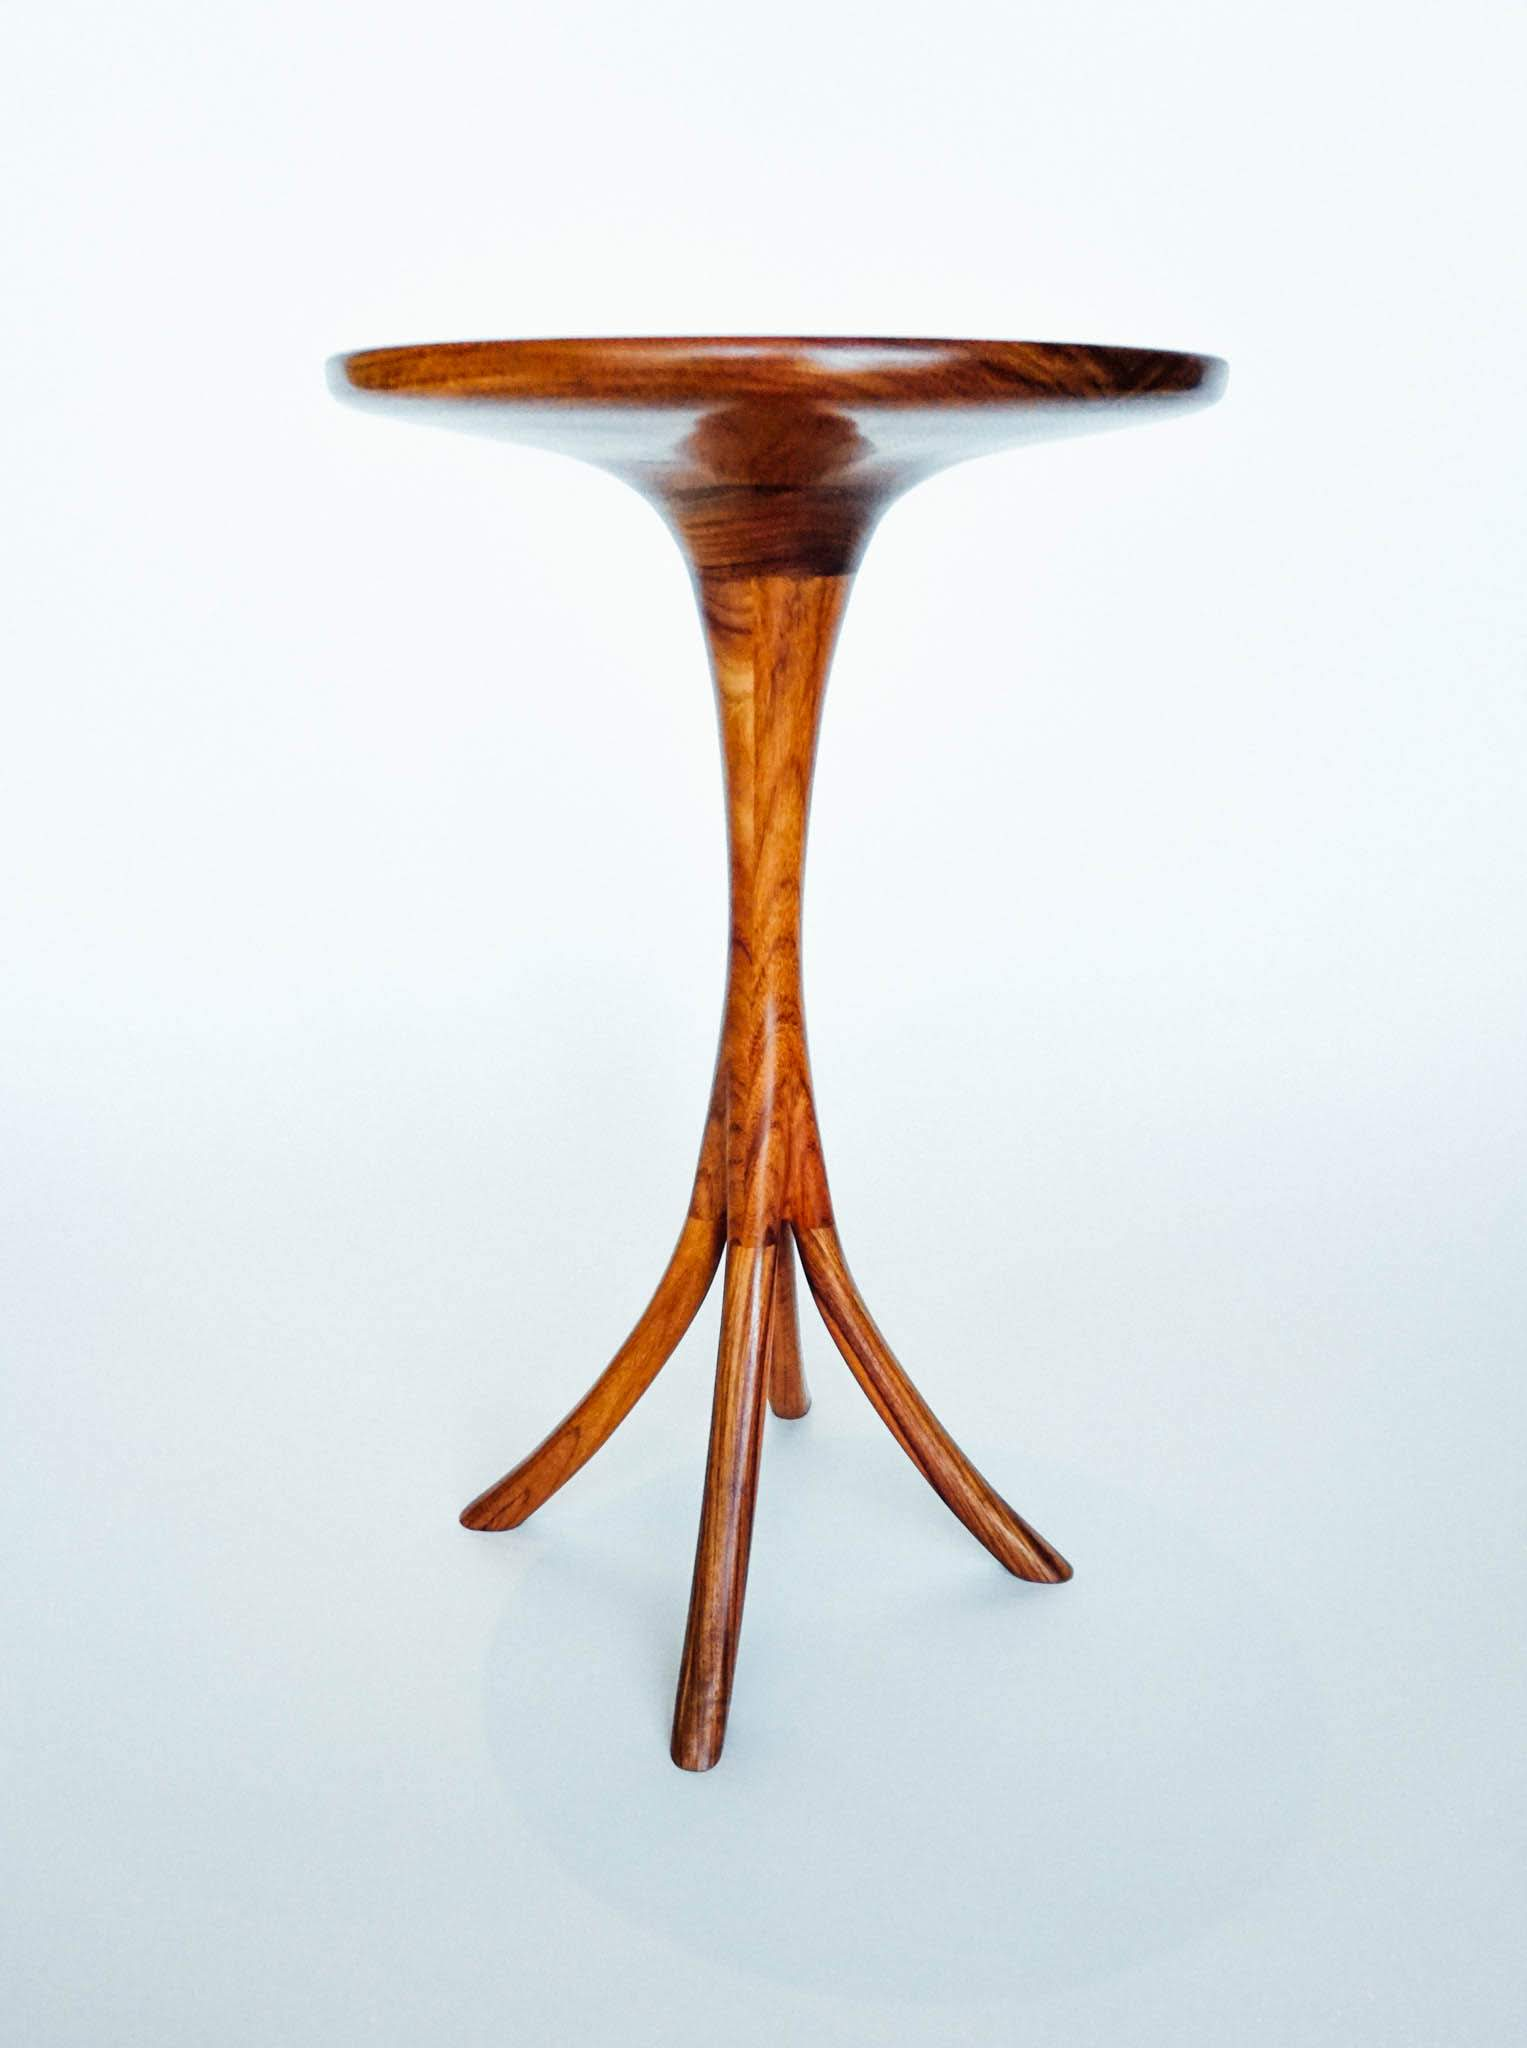 This profile shows the simple organic form of the design.